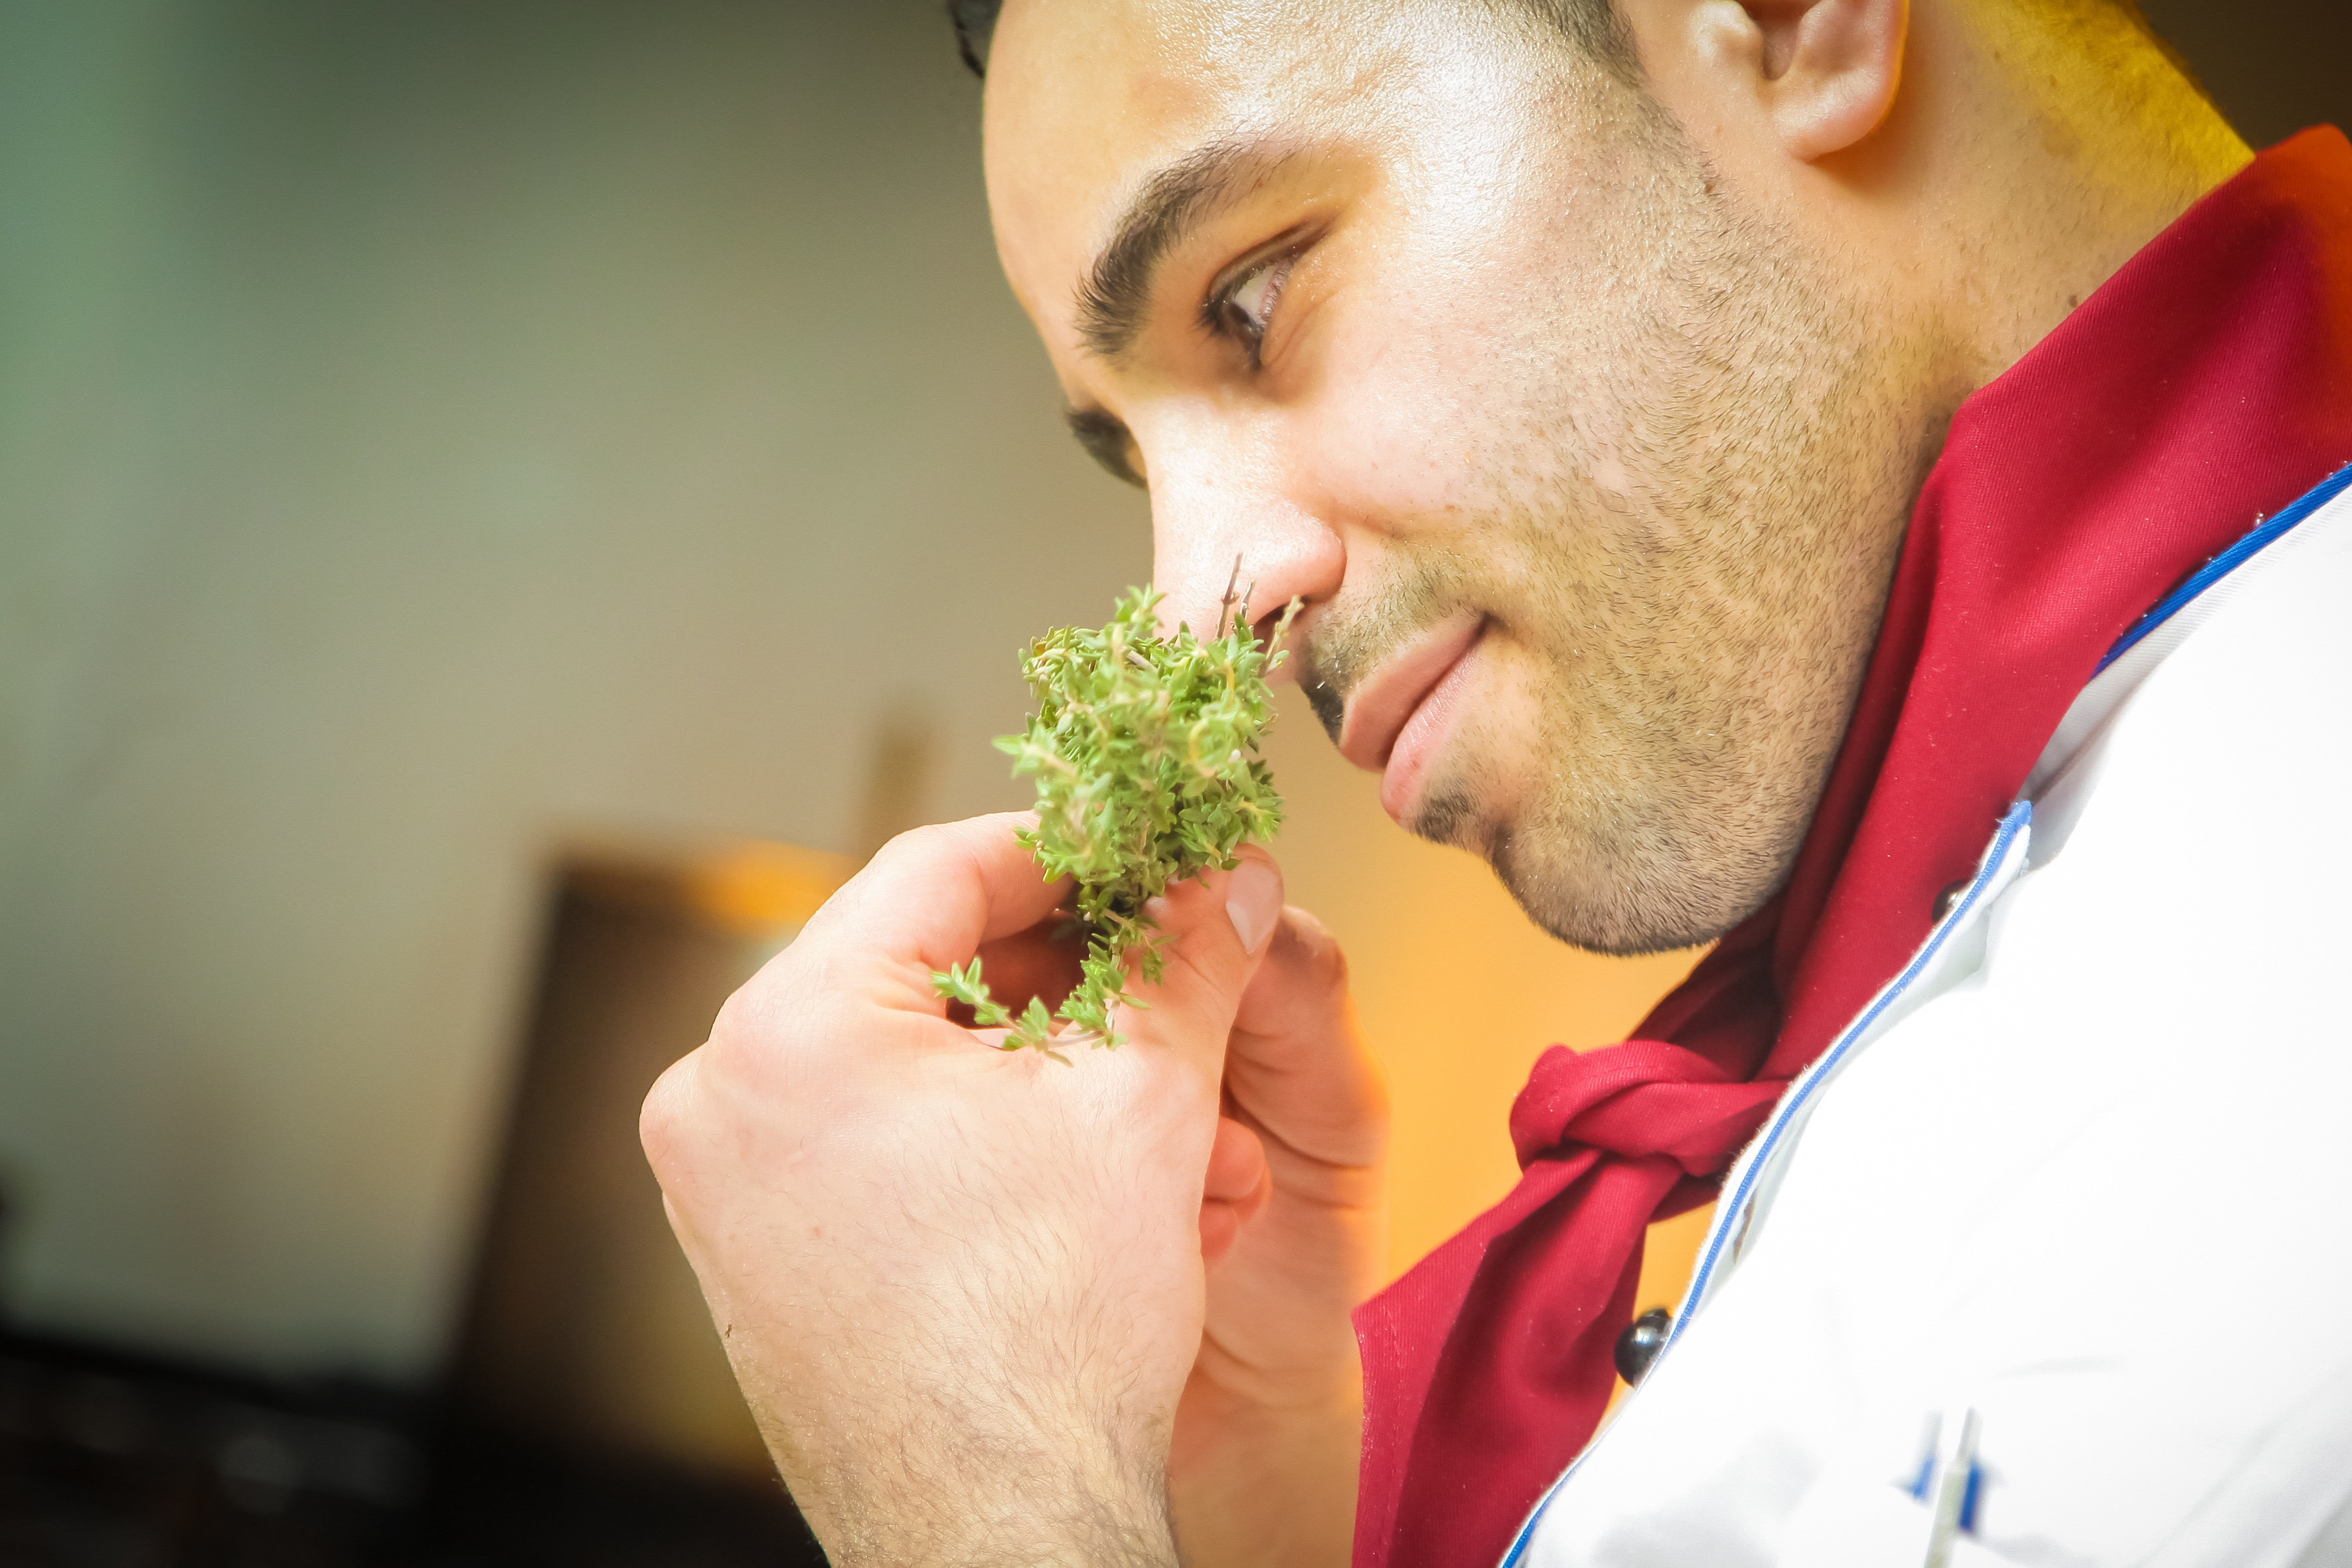 Chef sniffing herbs